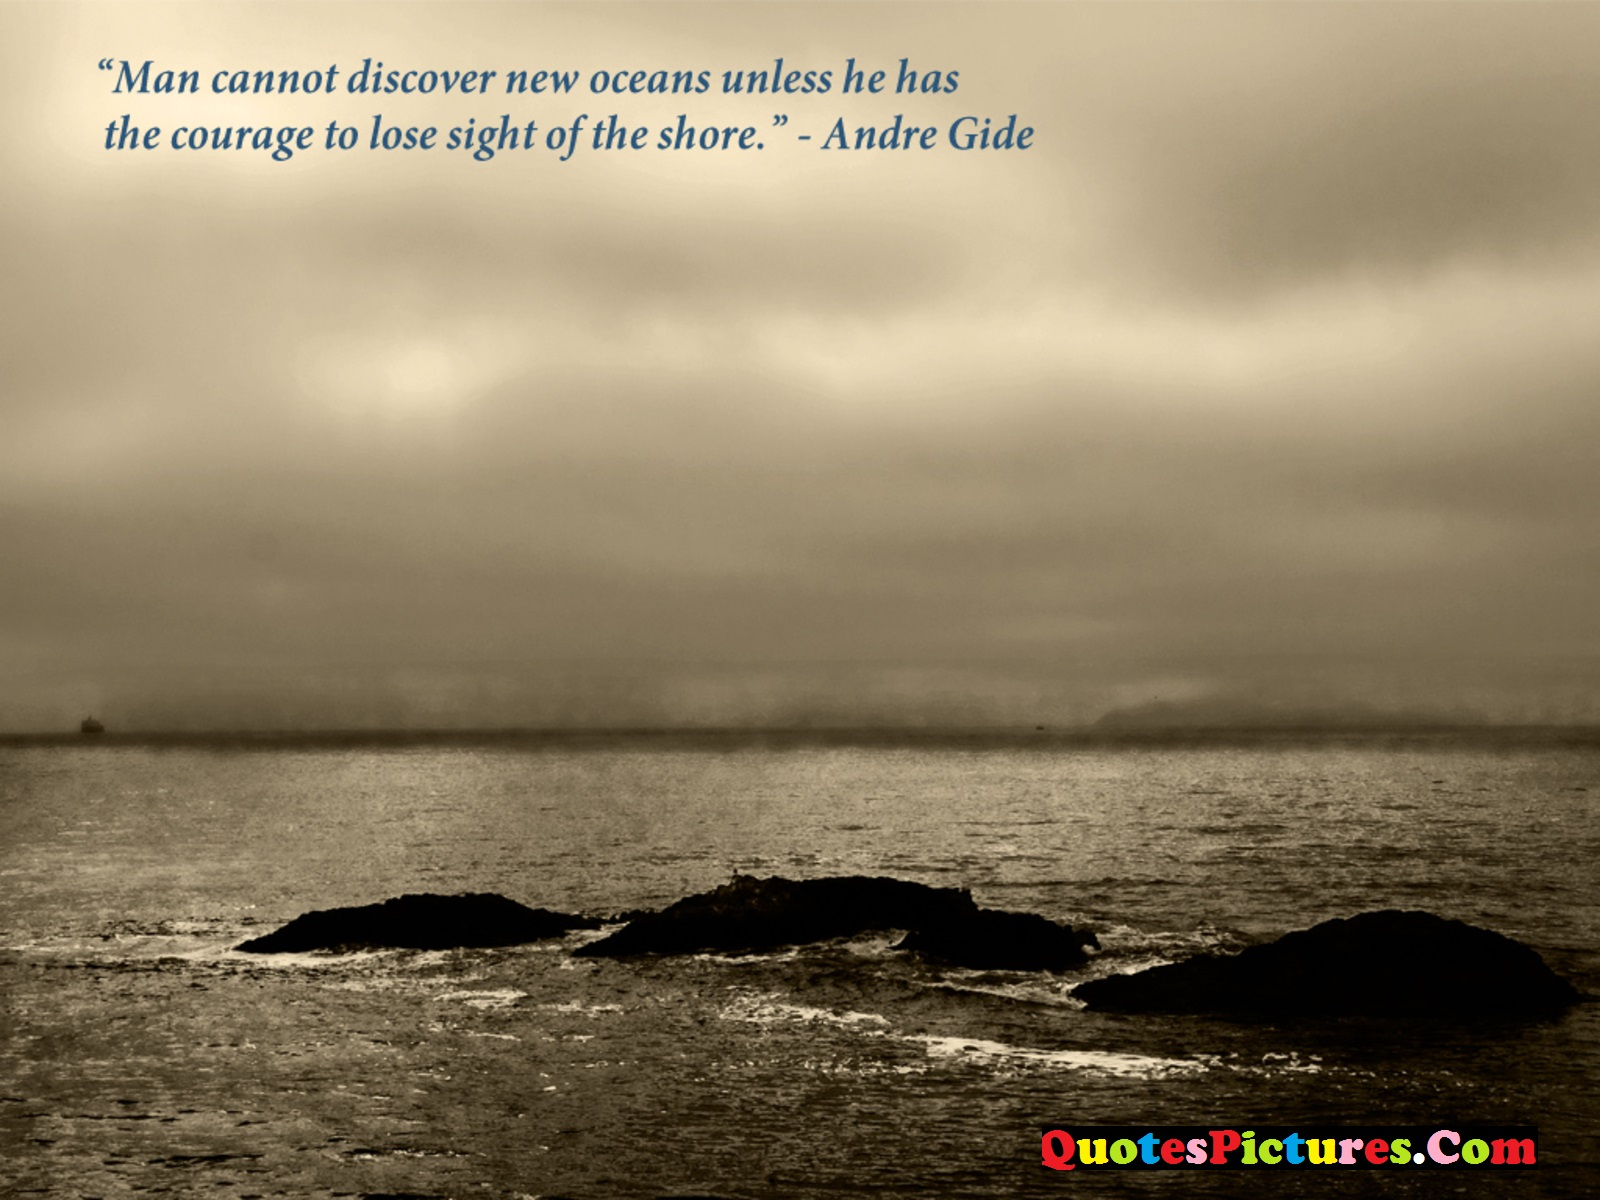 Courage Life Quote - Man Cannot Discover New Oceans Unless By Andre Gide